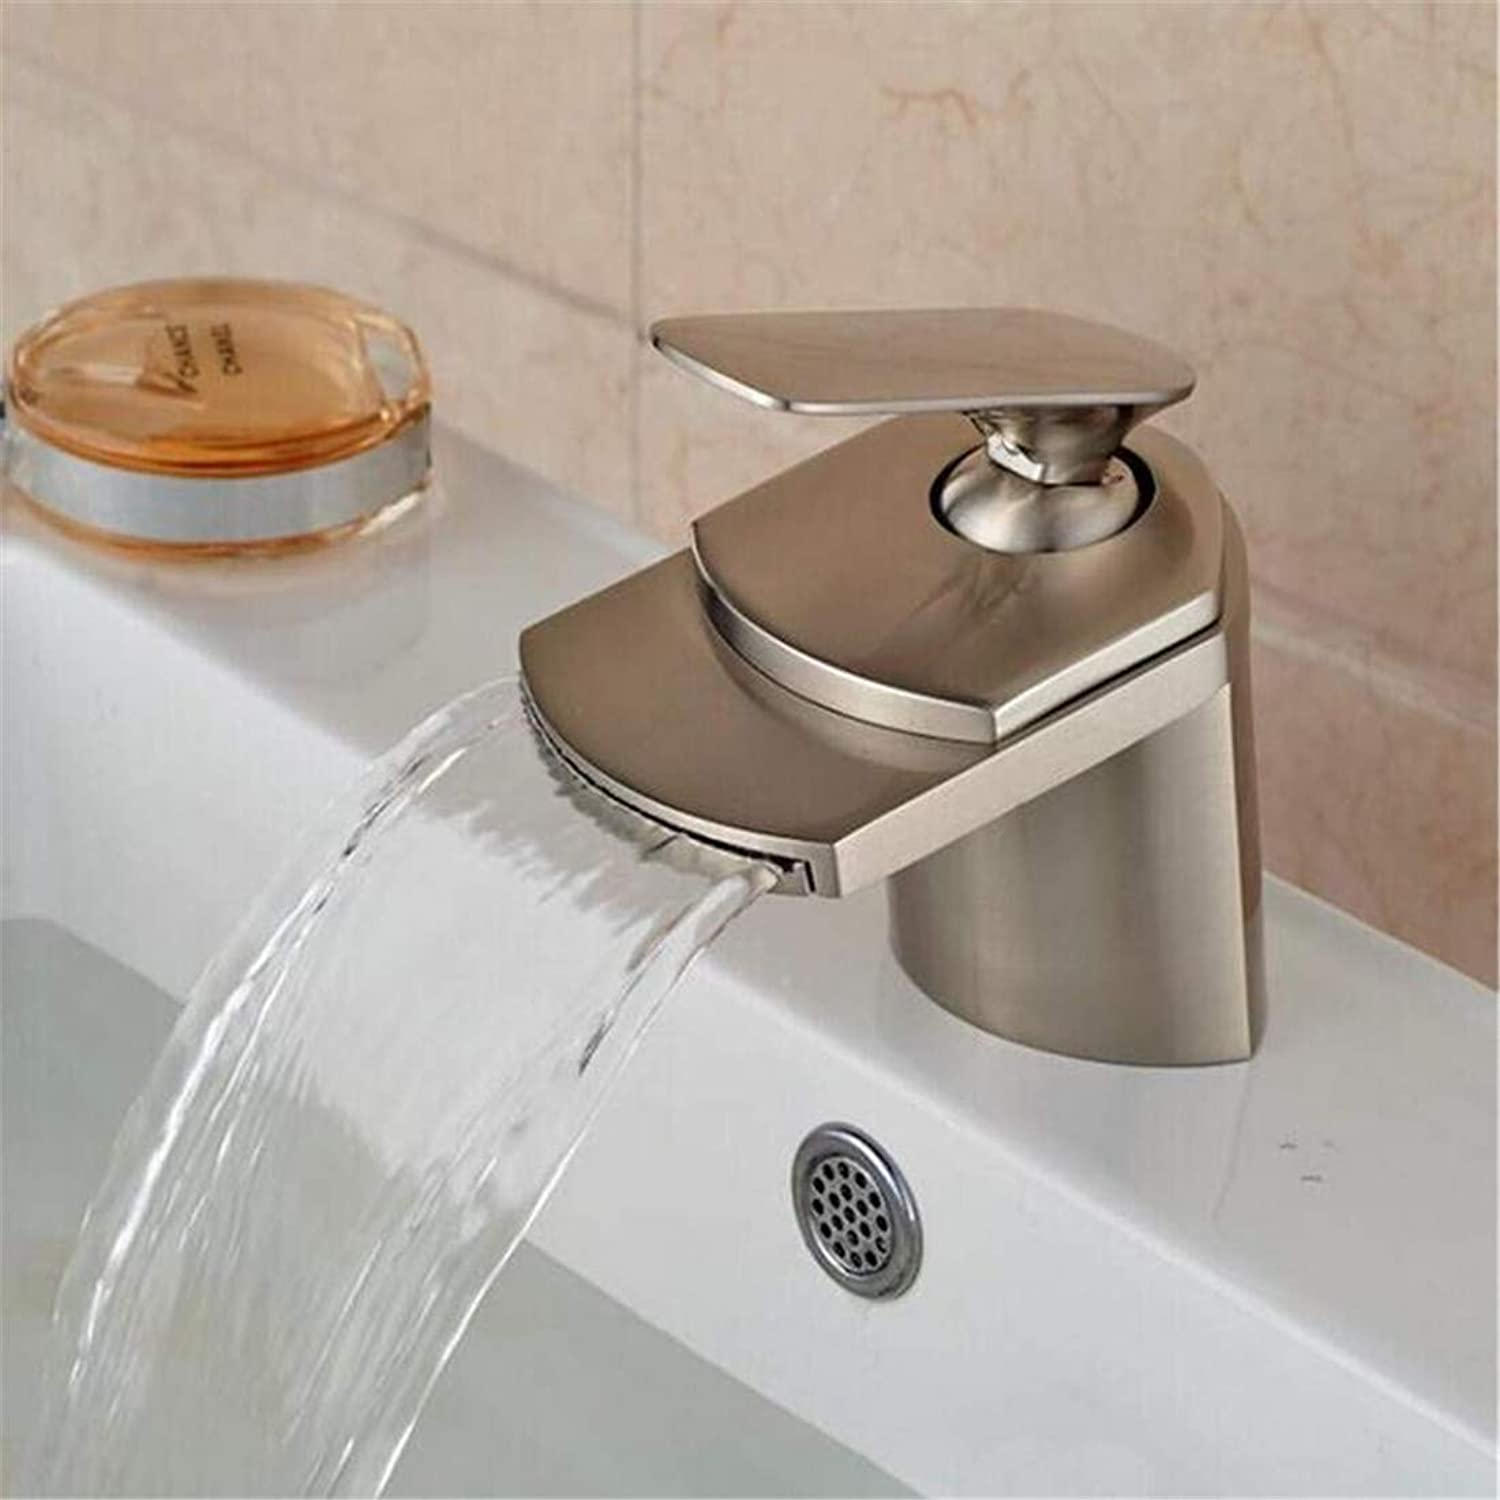 Faucet Modern Plated Kitchen Bathroom Faucet Faucets Basin Mixer Hot and Cold Water Mixer Tap Brushed Nickel Finished